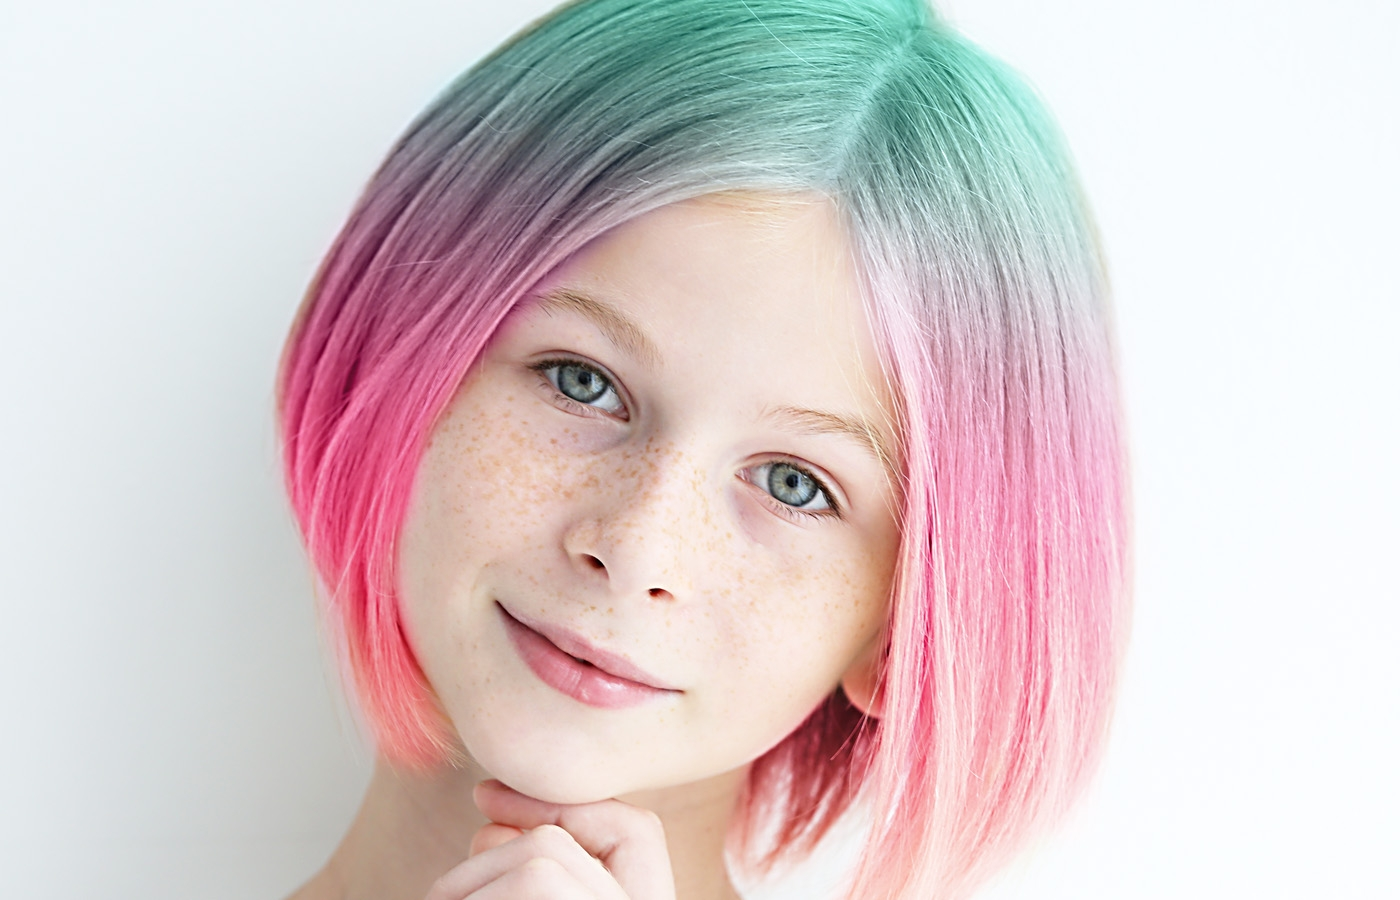 8 Best Temporary Hair Colors for Kids